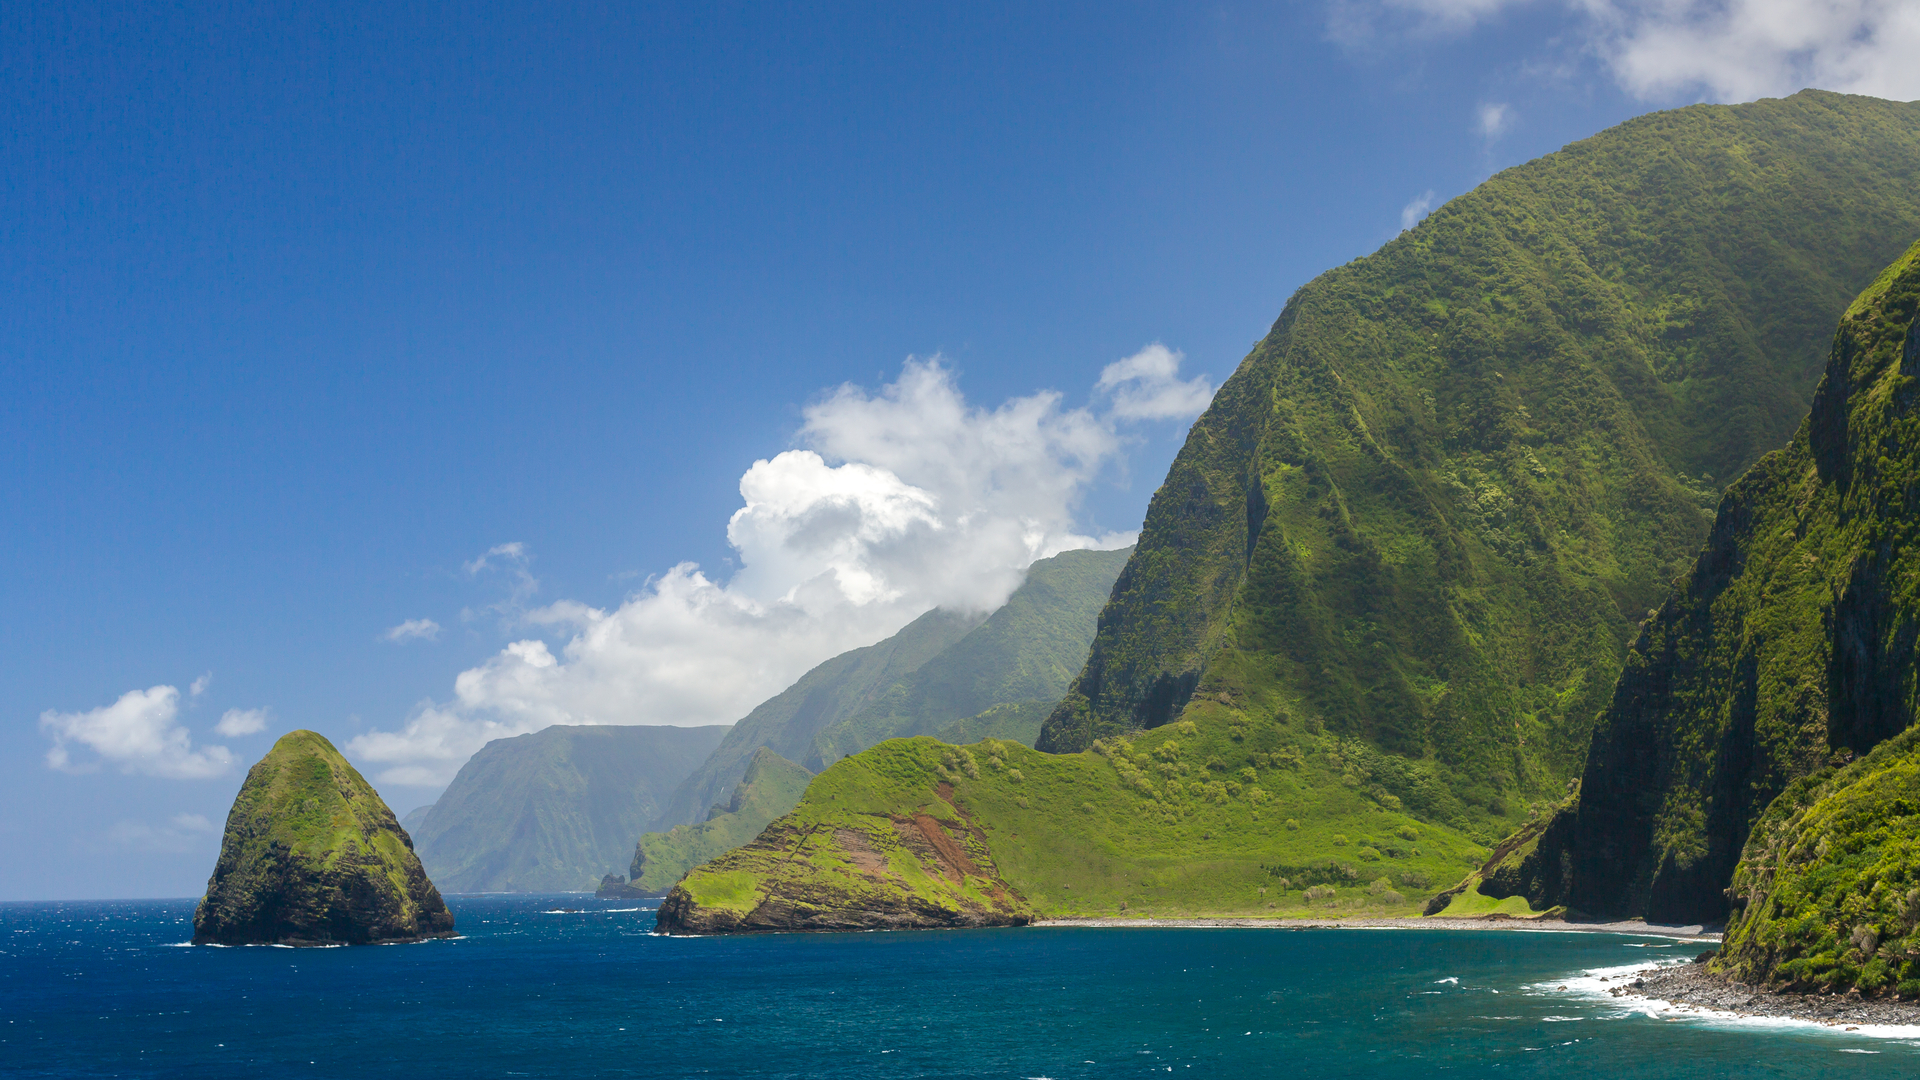 A Guide To The Best Islands in Hawaii to Visit | SmarterTravel